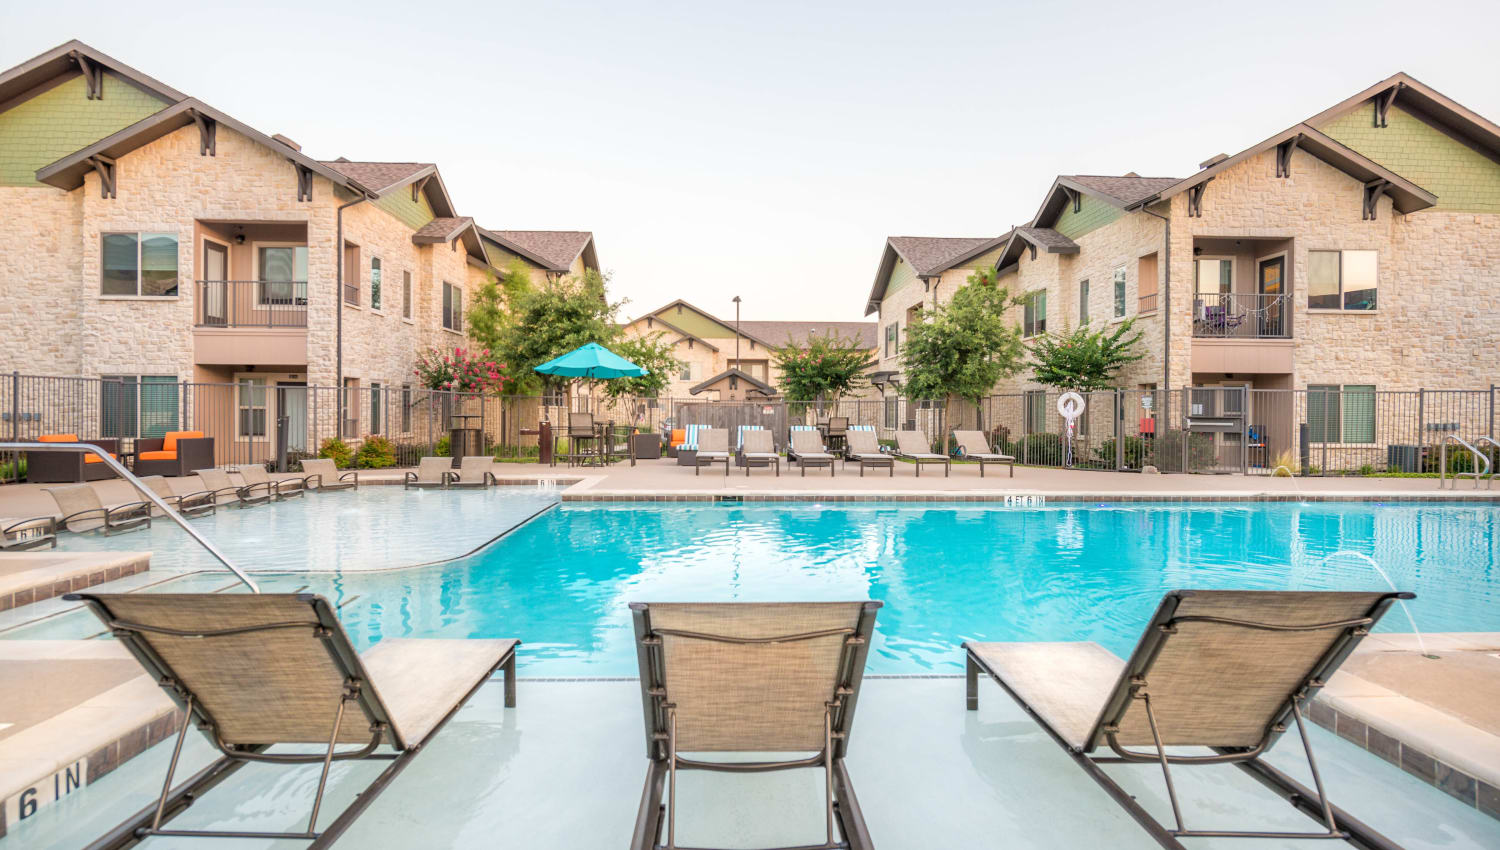 Lounge chairs on the sun deck in the pool at Olympus Waterford in Keller, Texas